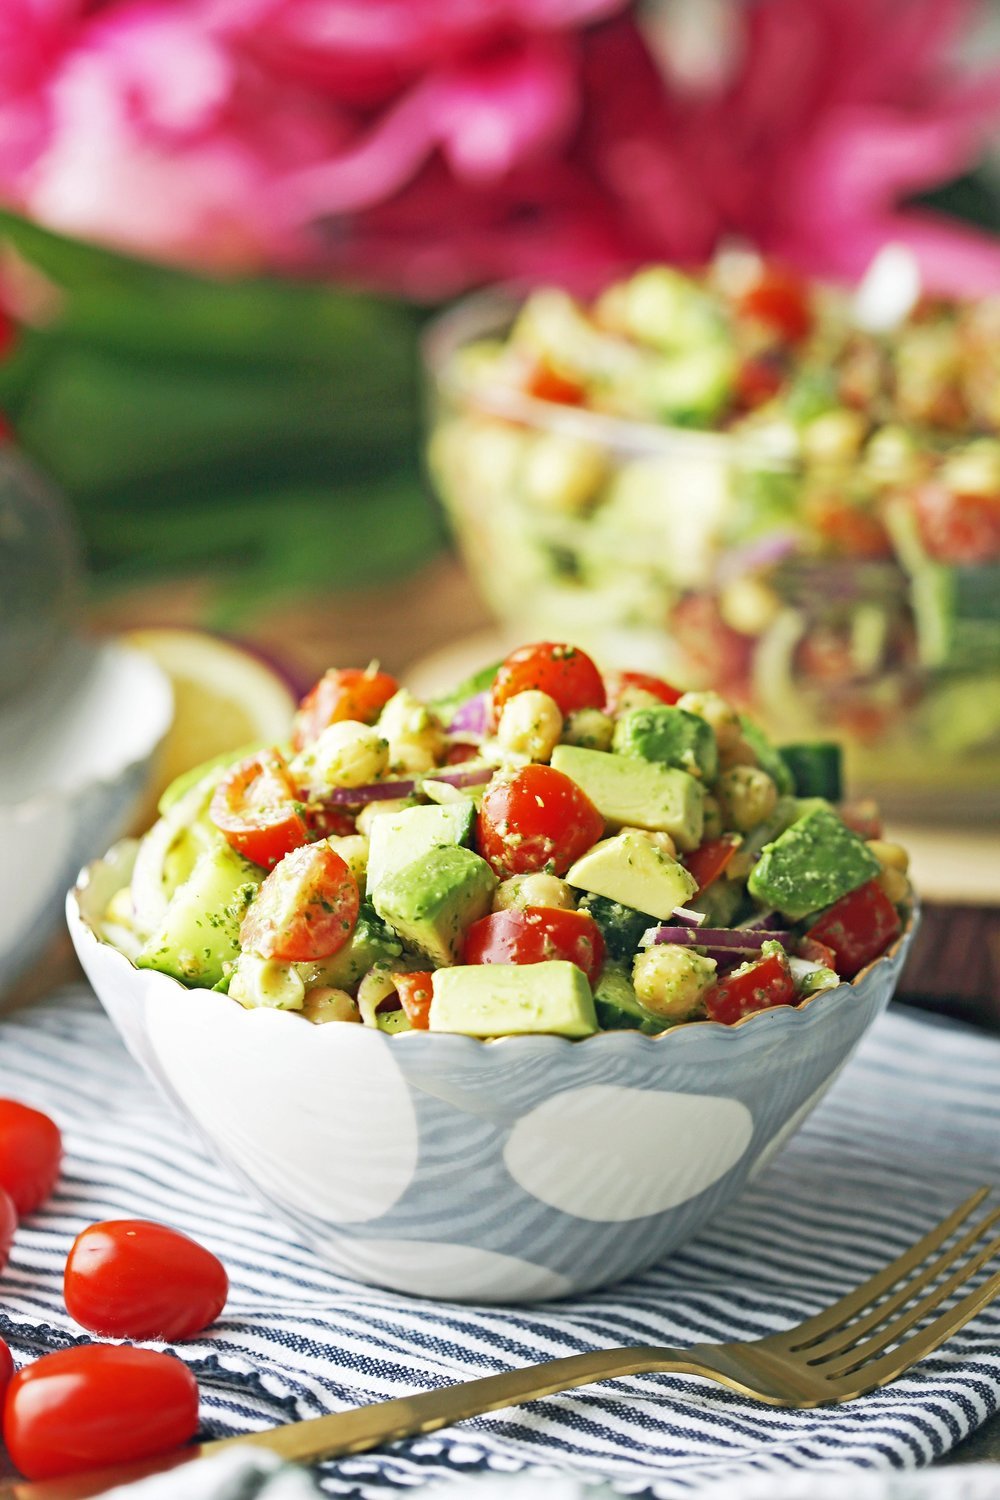 Chickpea Cucumber Avocado Salad with Parsley Dressing in a blue and white bowl with fork on the side.